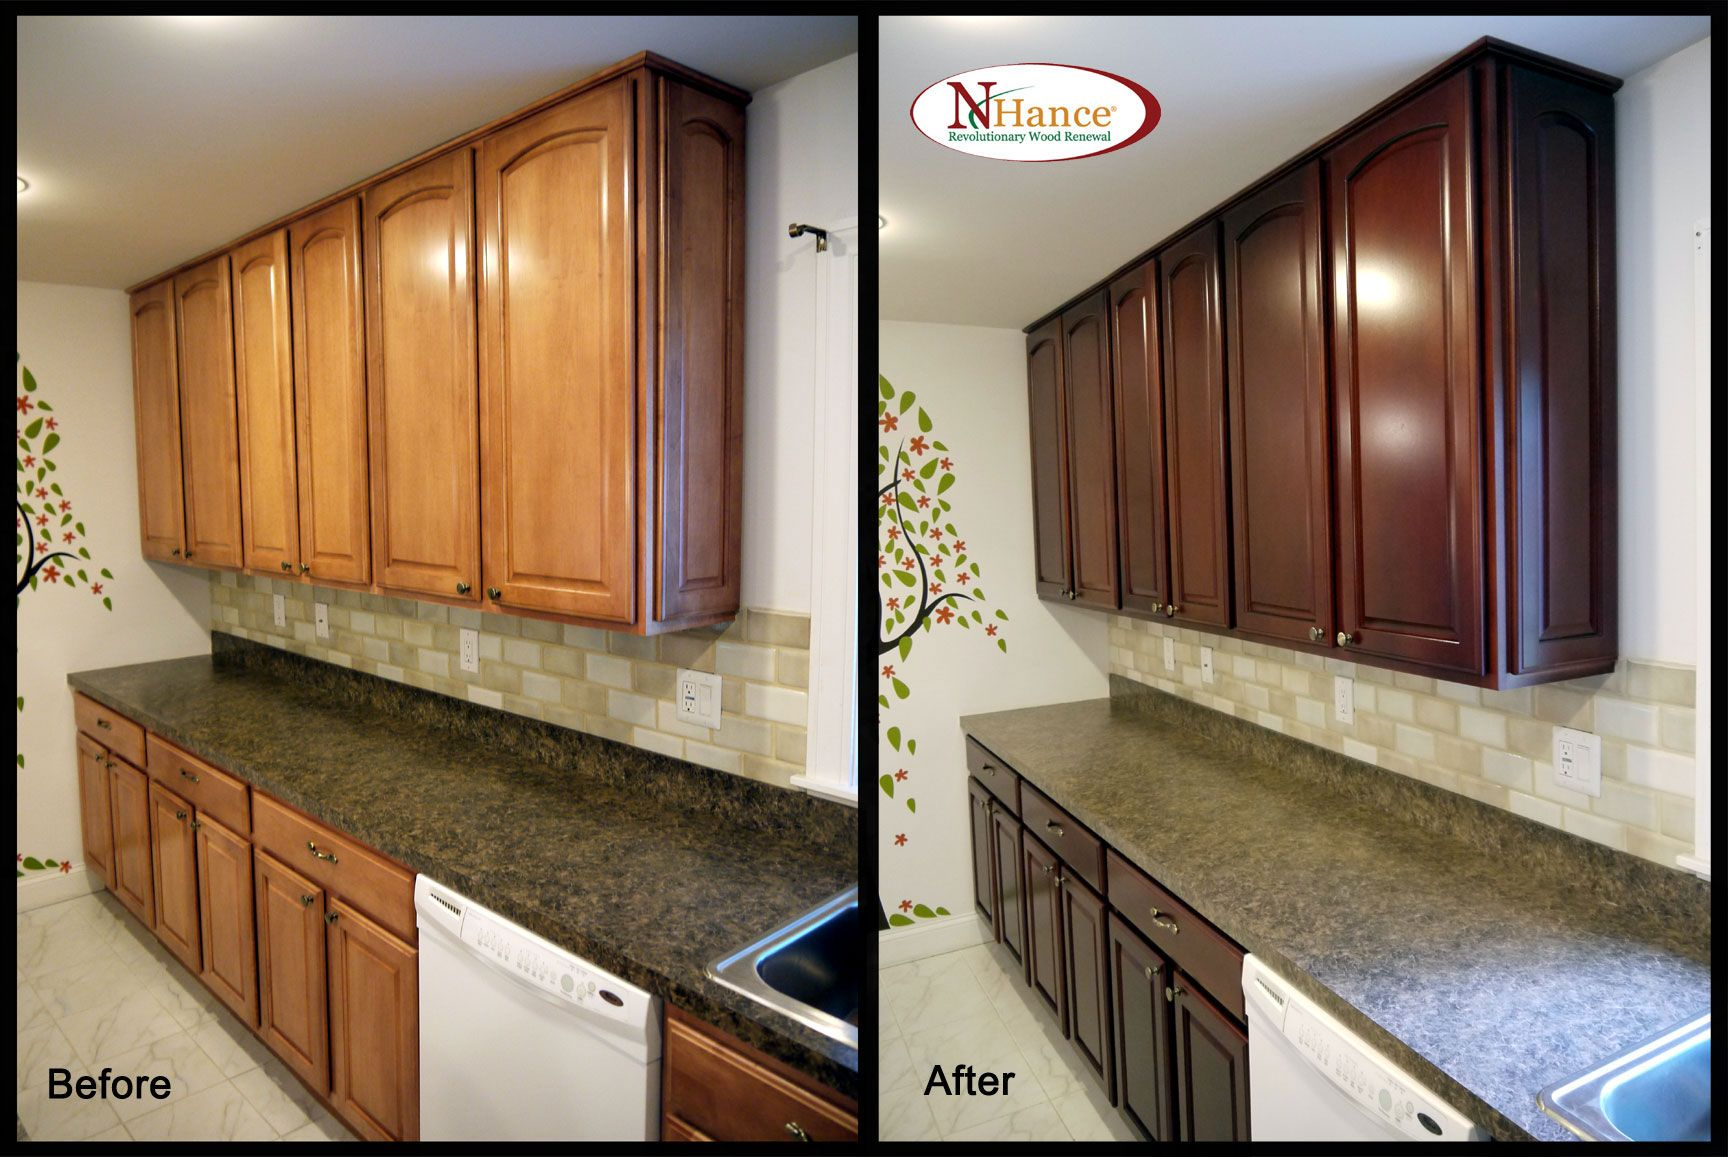 Pin By K Guz On Fixin Kitchen Restaining Kitchen Cabinets Custom Kitchen Cabinets Kitchen Cabinet Colors